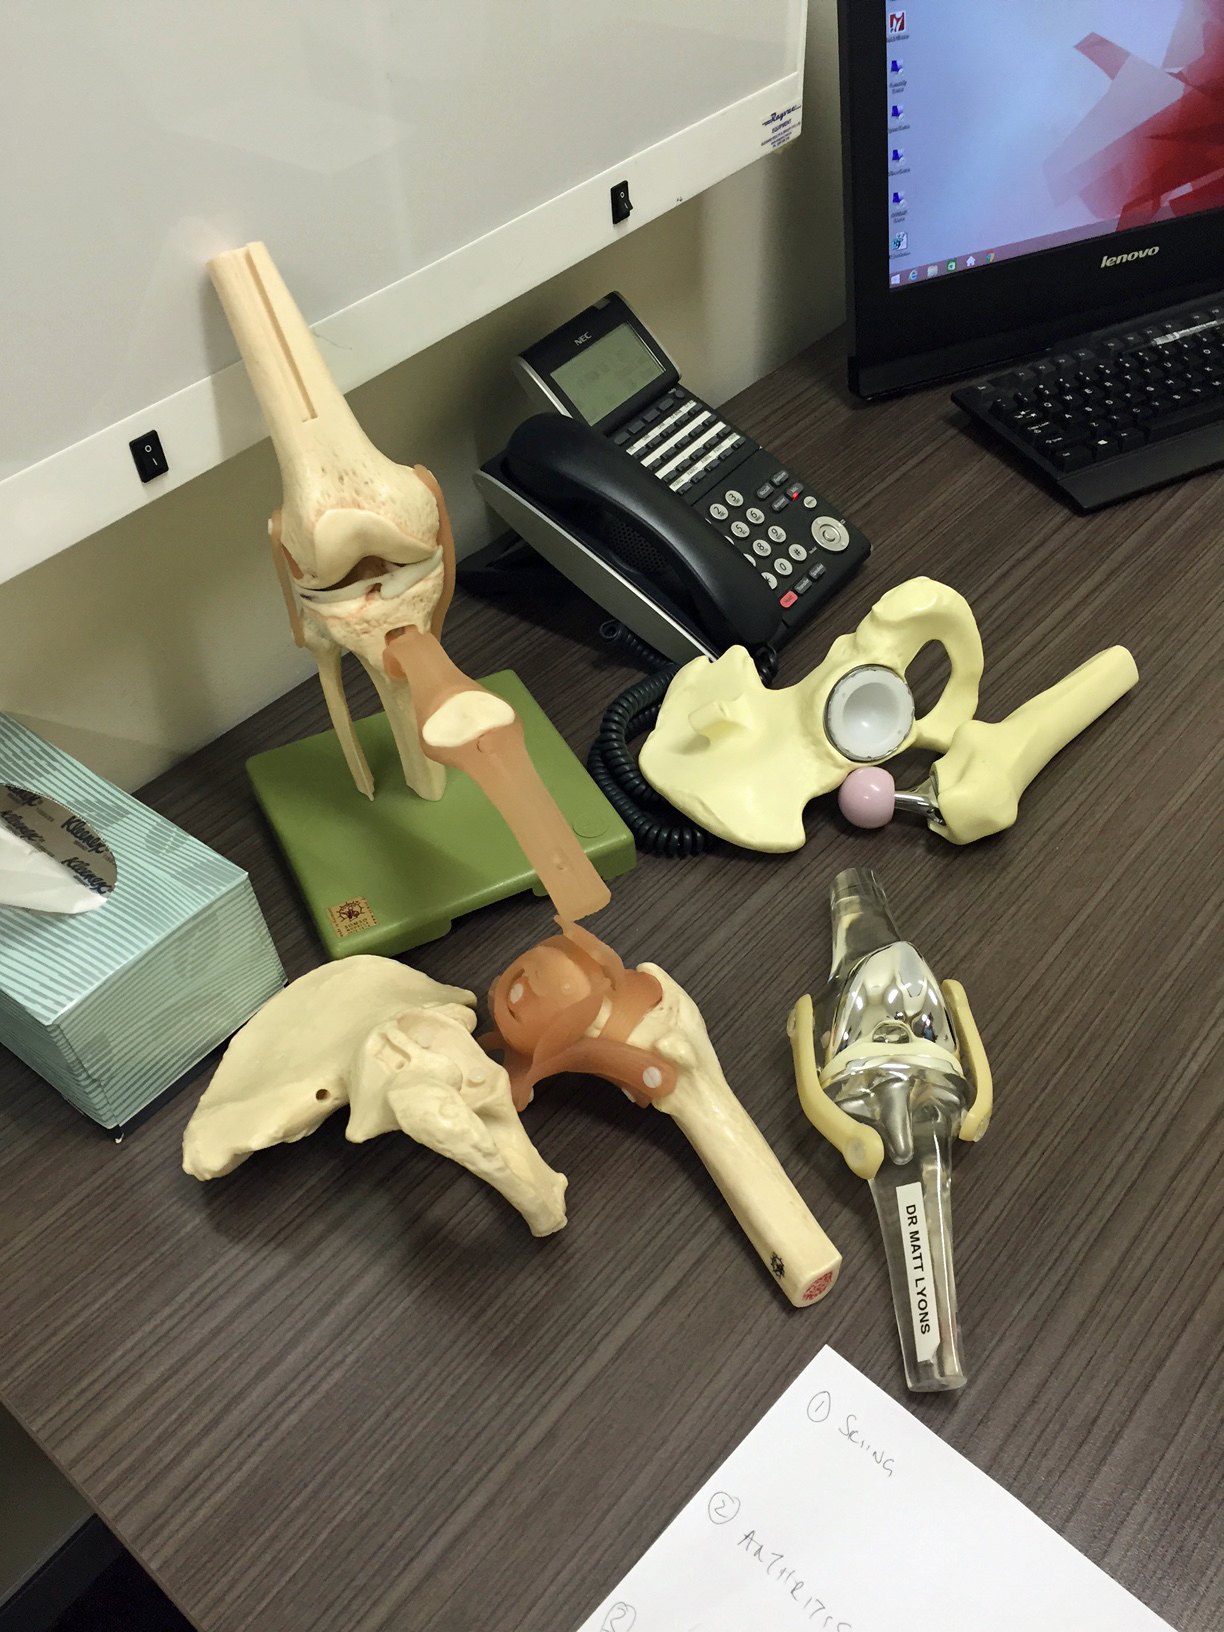 The cluttered paraphernalia on an orthopaedic surgeon's desk. My list of questions is also in the photograph.